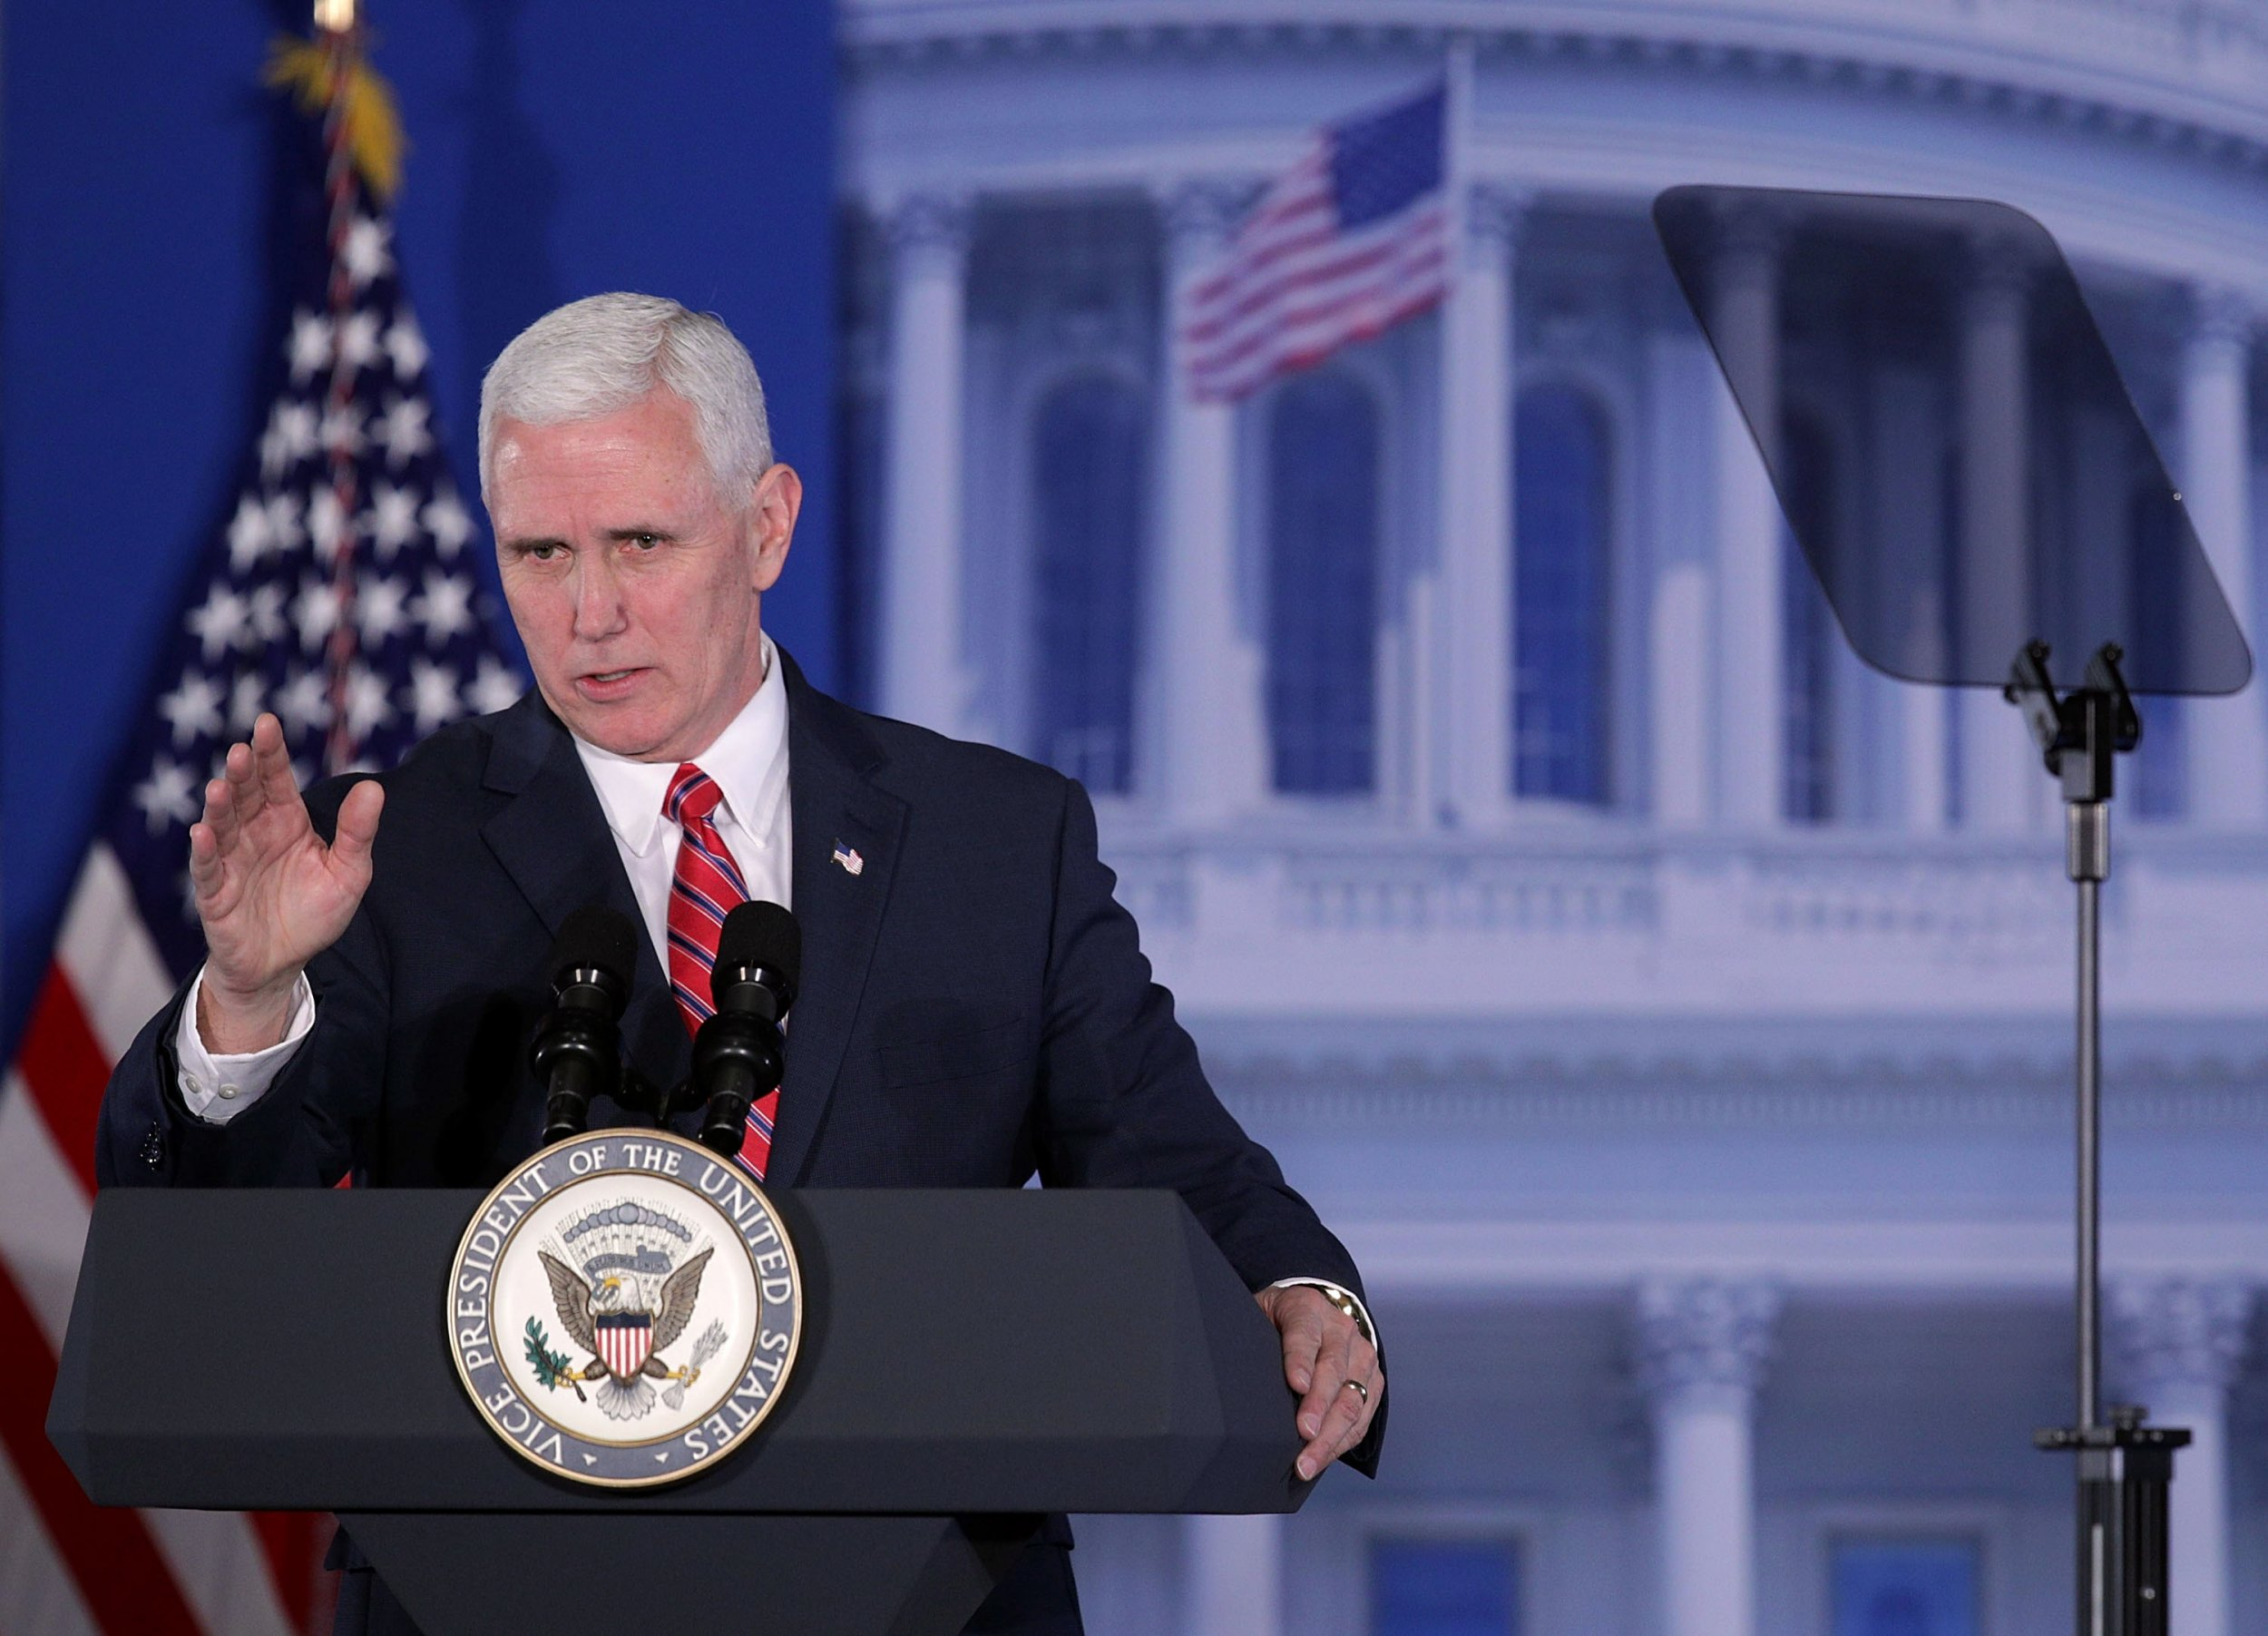 How Many Days Before President Pence